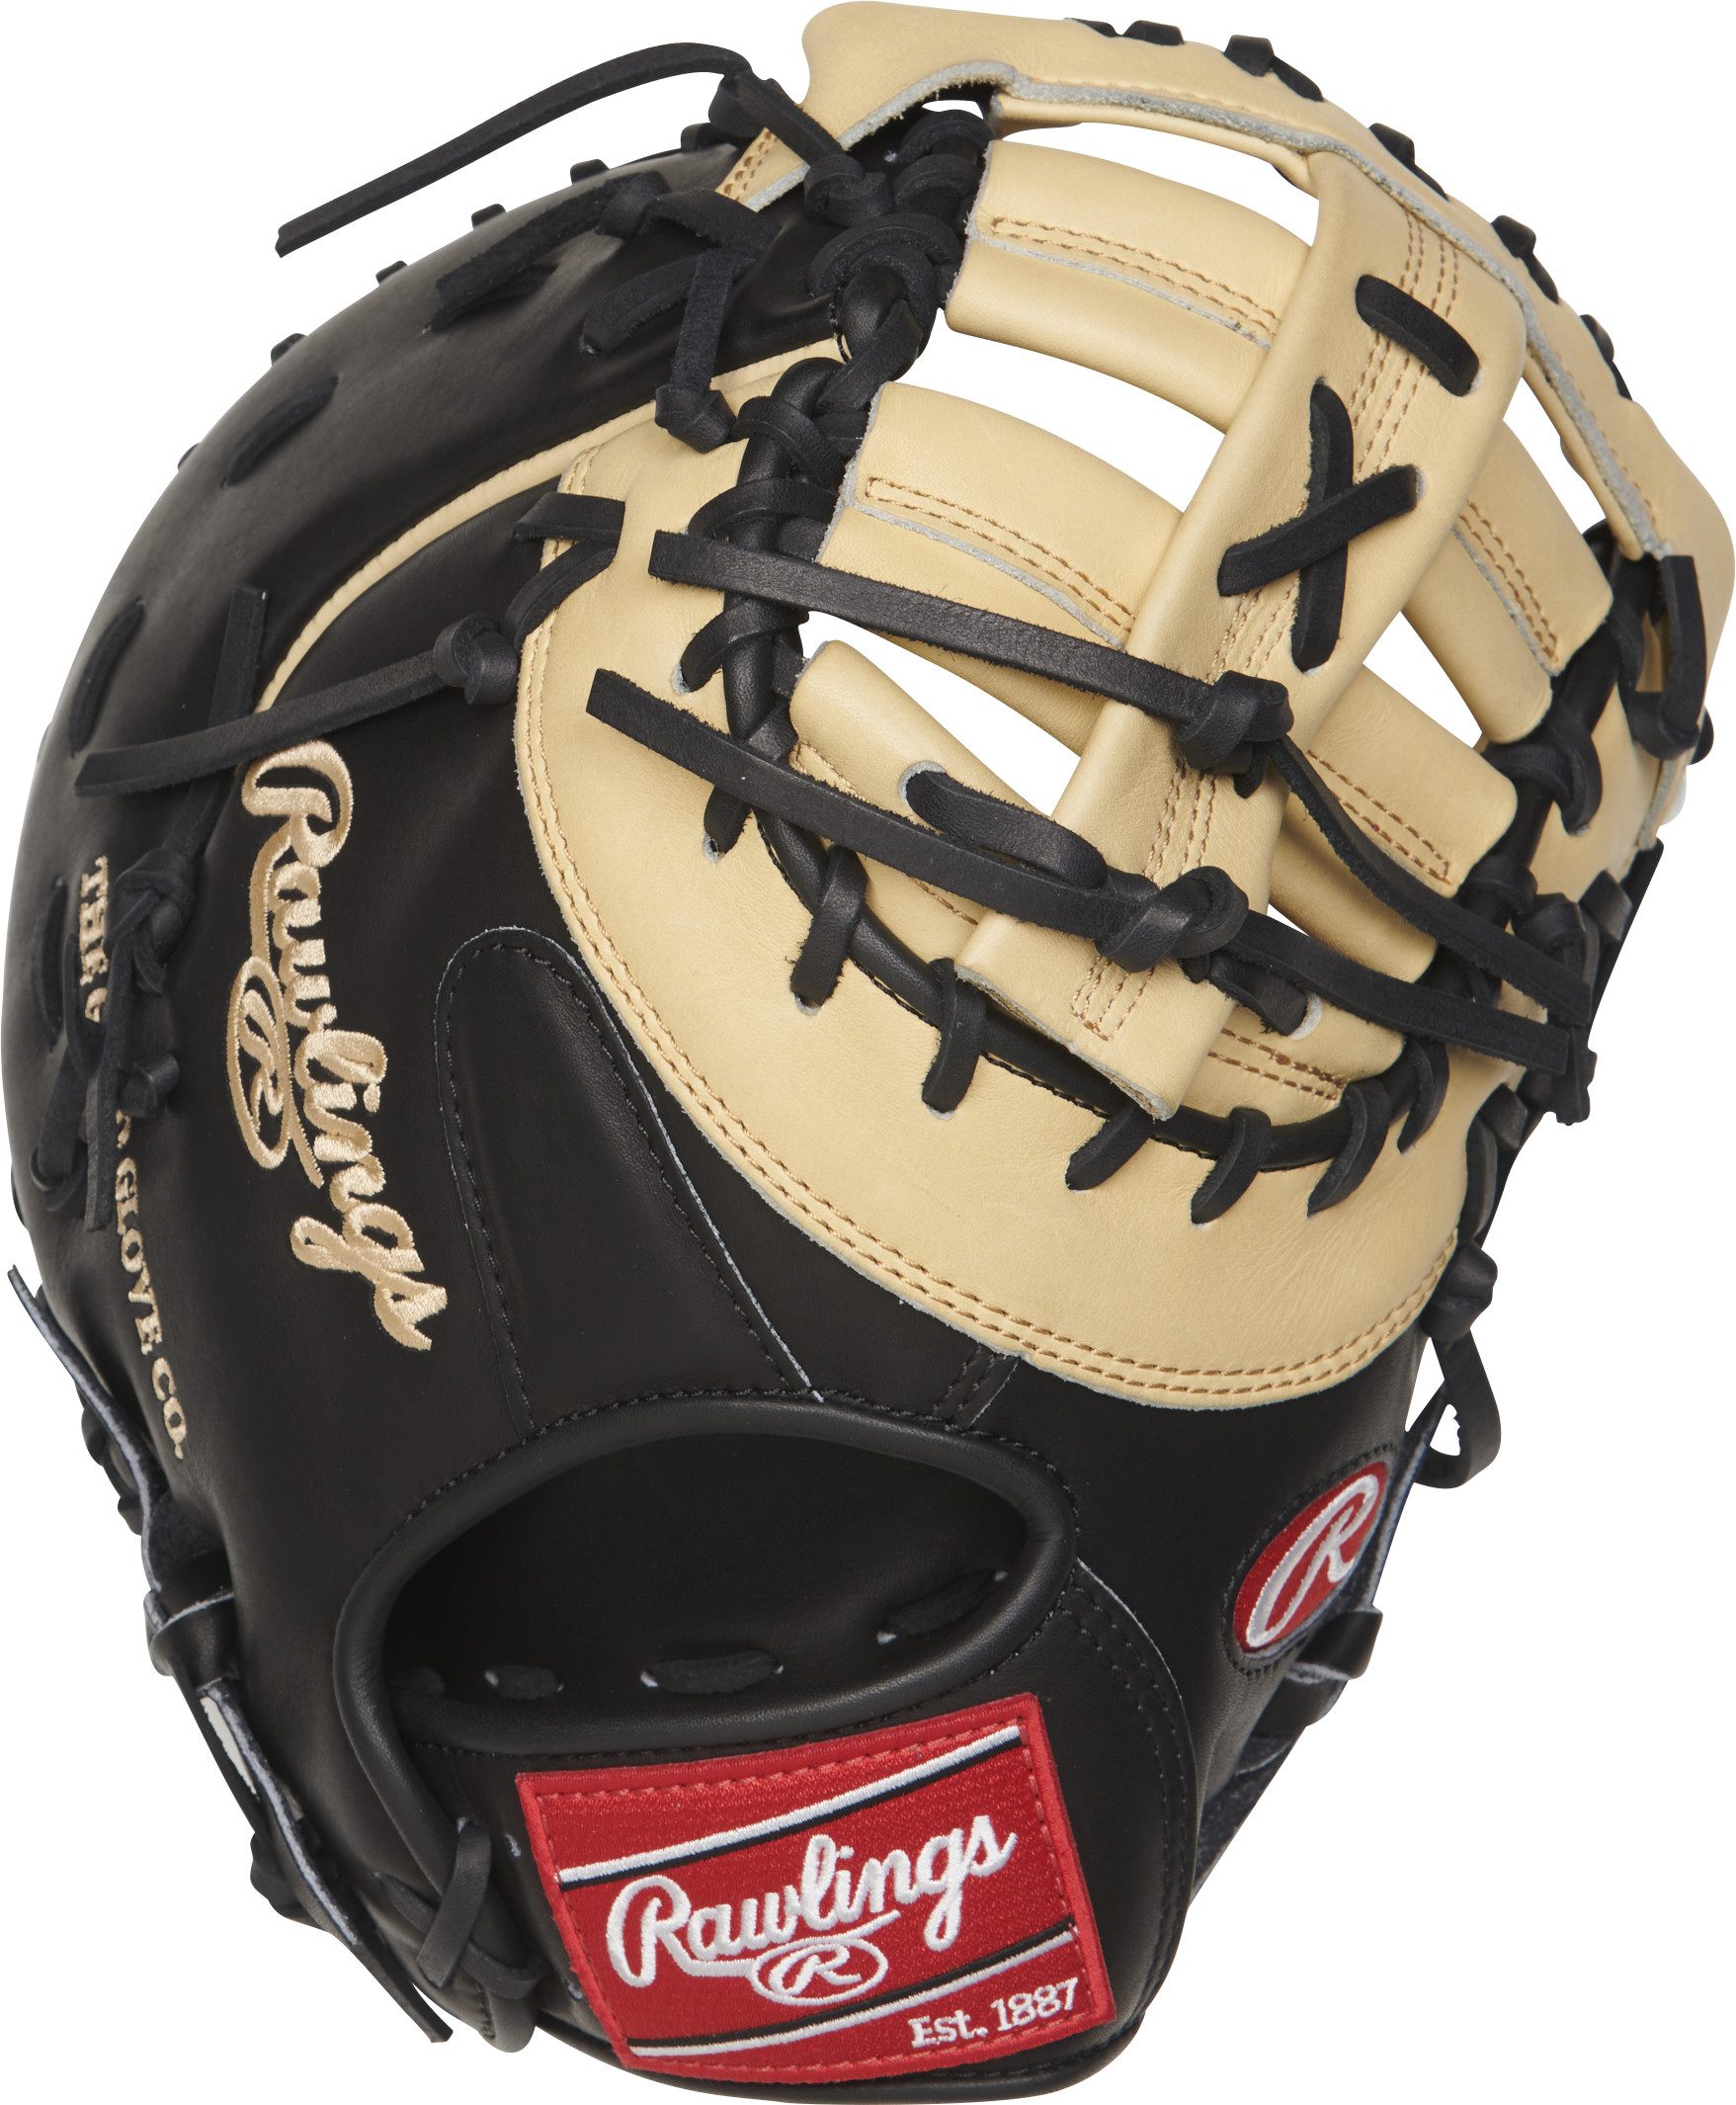 http://www.bestbatdeals.com/images/gloves/rawlings/PRODCTCB-2.jpg